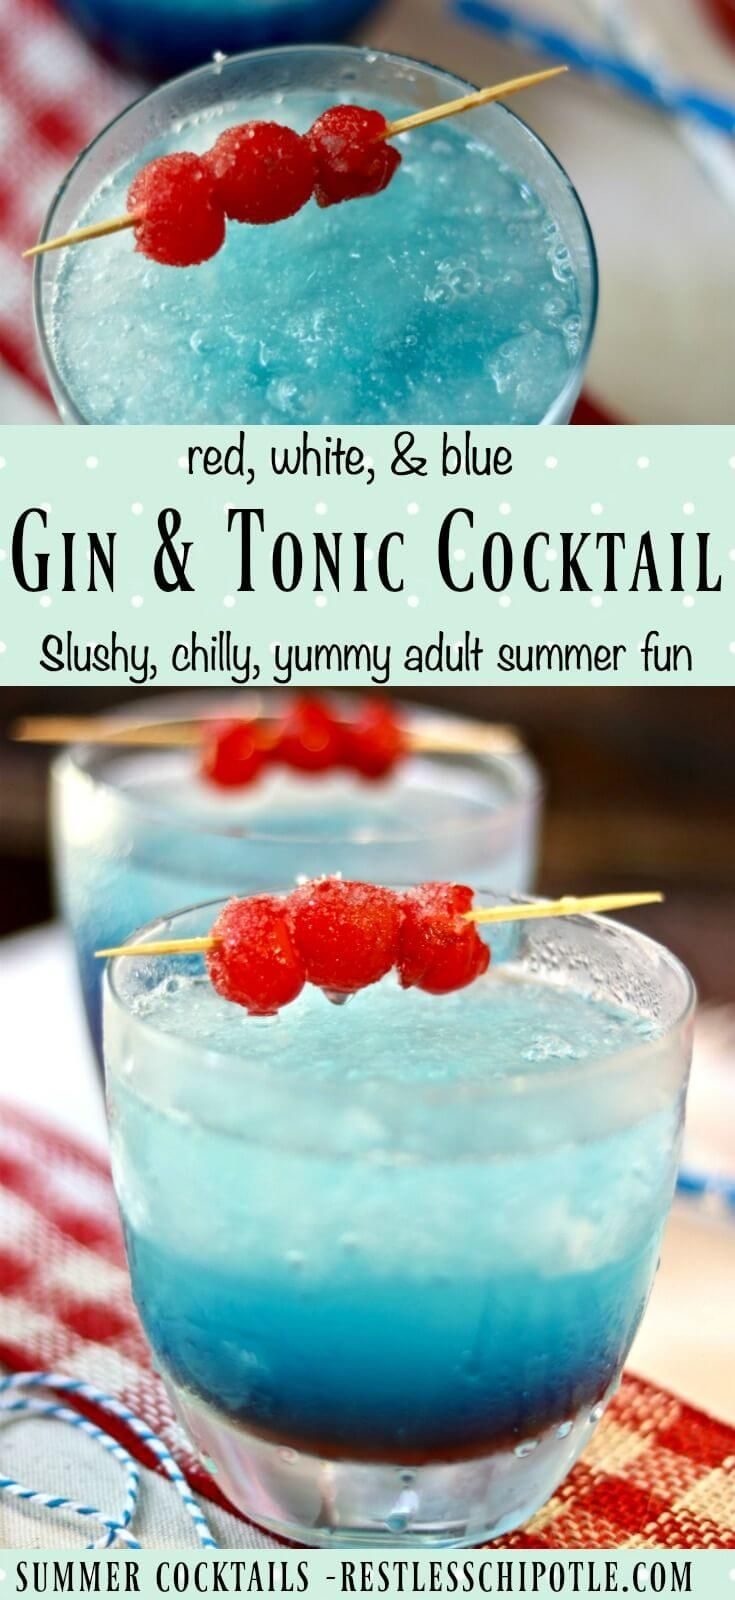 Classic gin and tonic cocktail is updated with slushy red, white, and blue stripes for summer! From RestlessChipotle.com via @Marye at Restless Chipotle